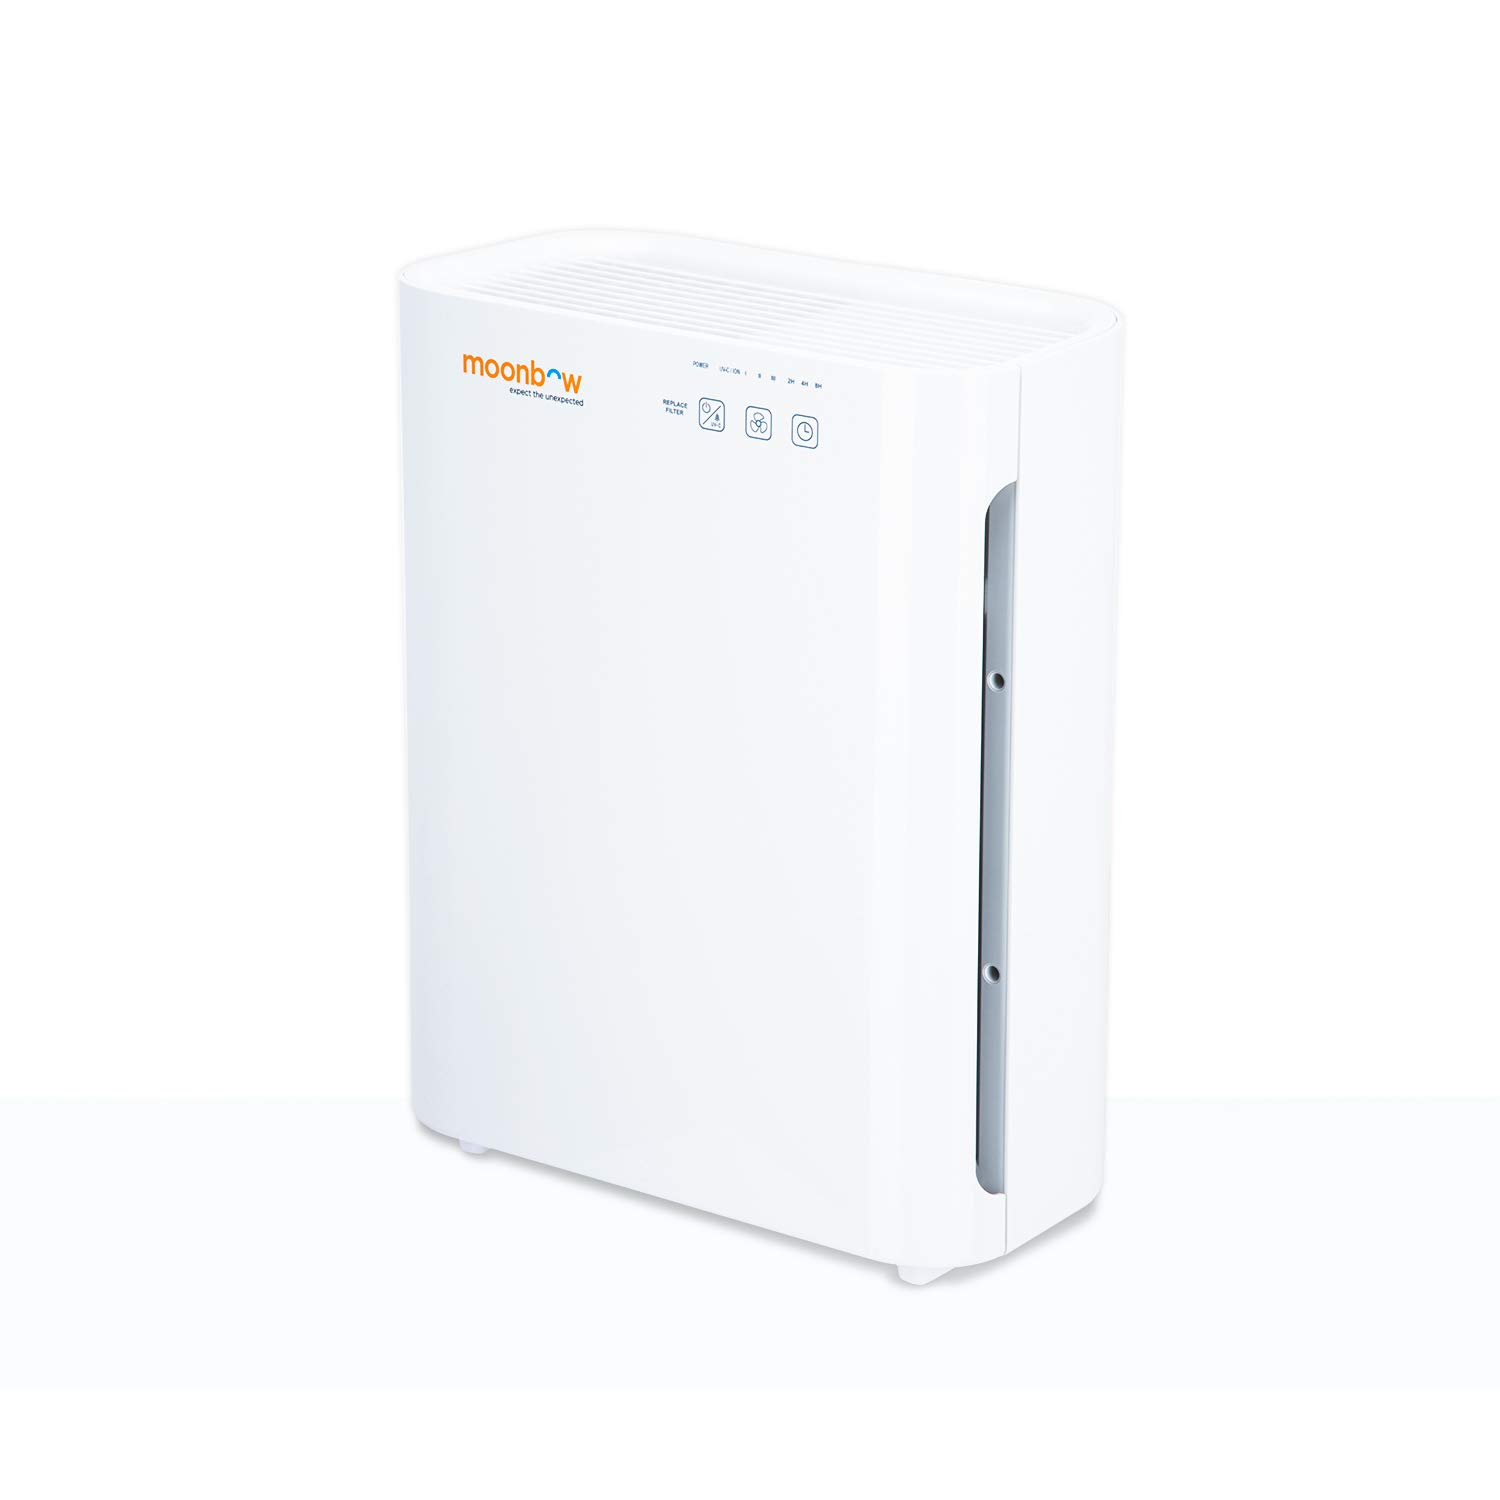 Hindware Moonbow AP-A8400UIN Air Purifier